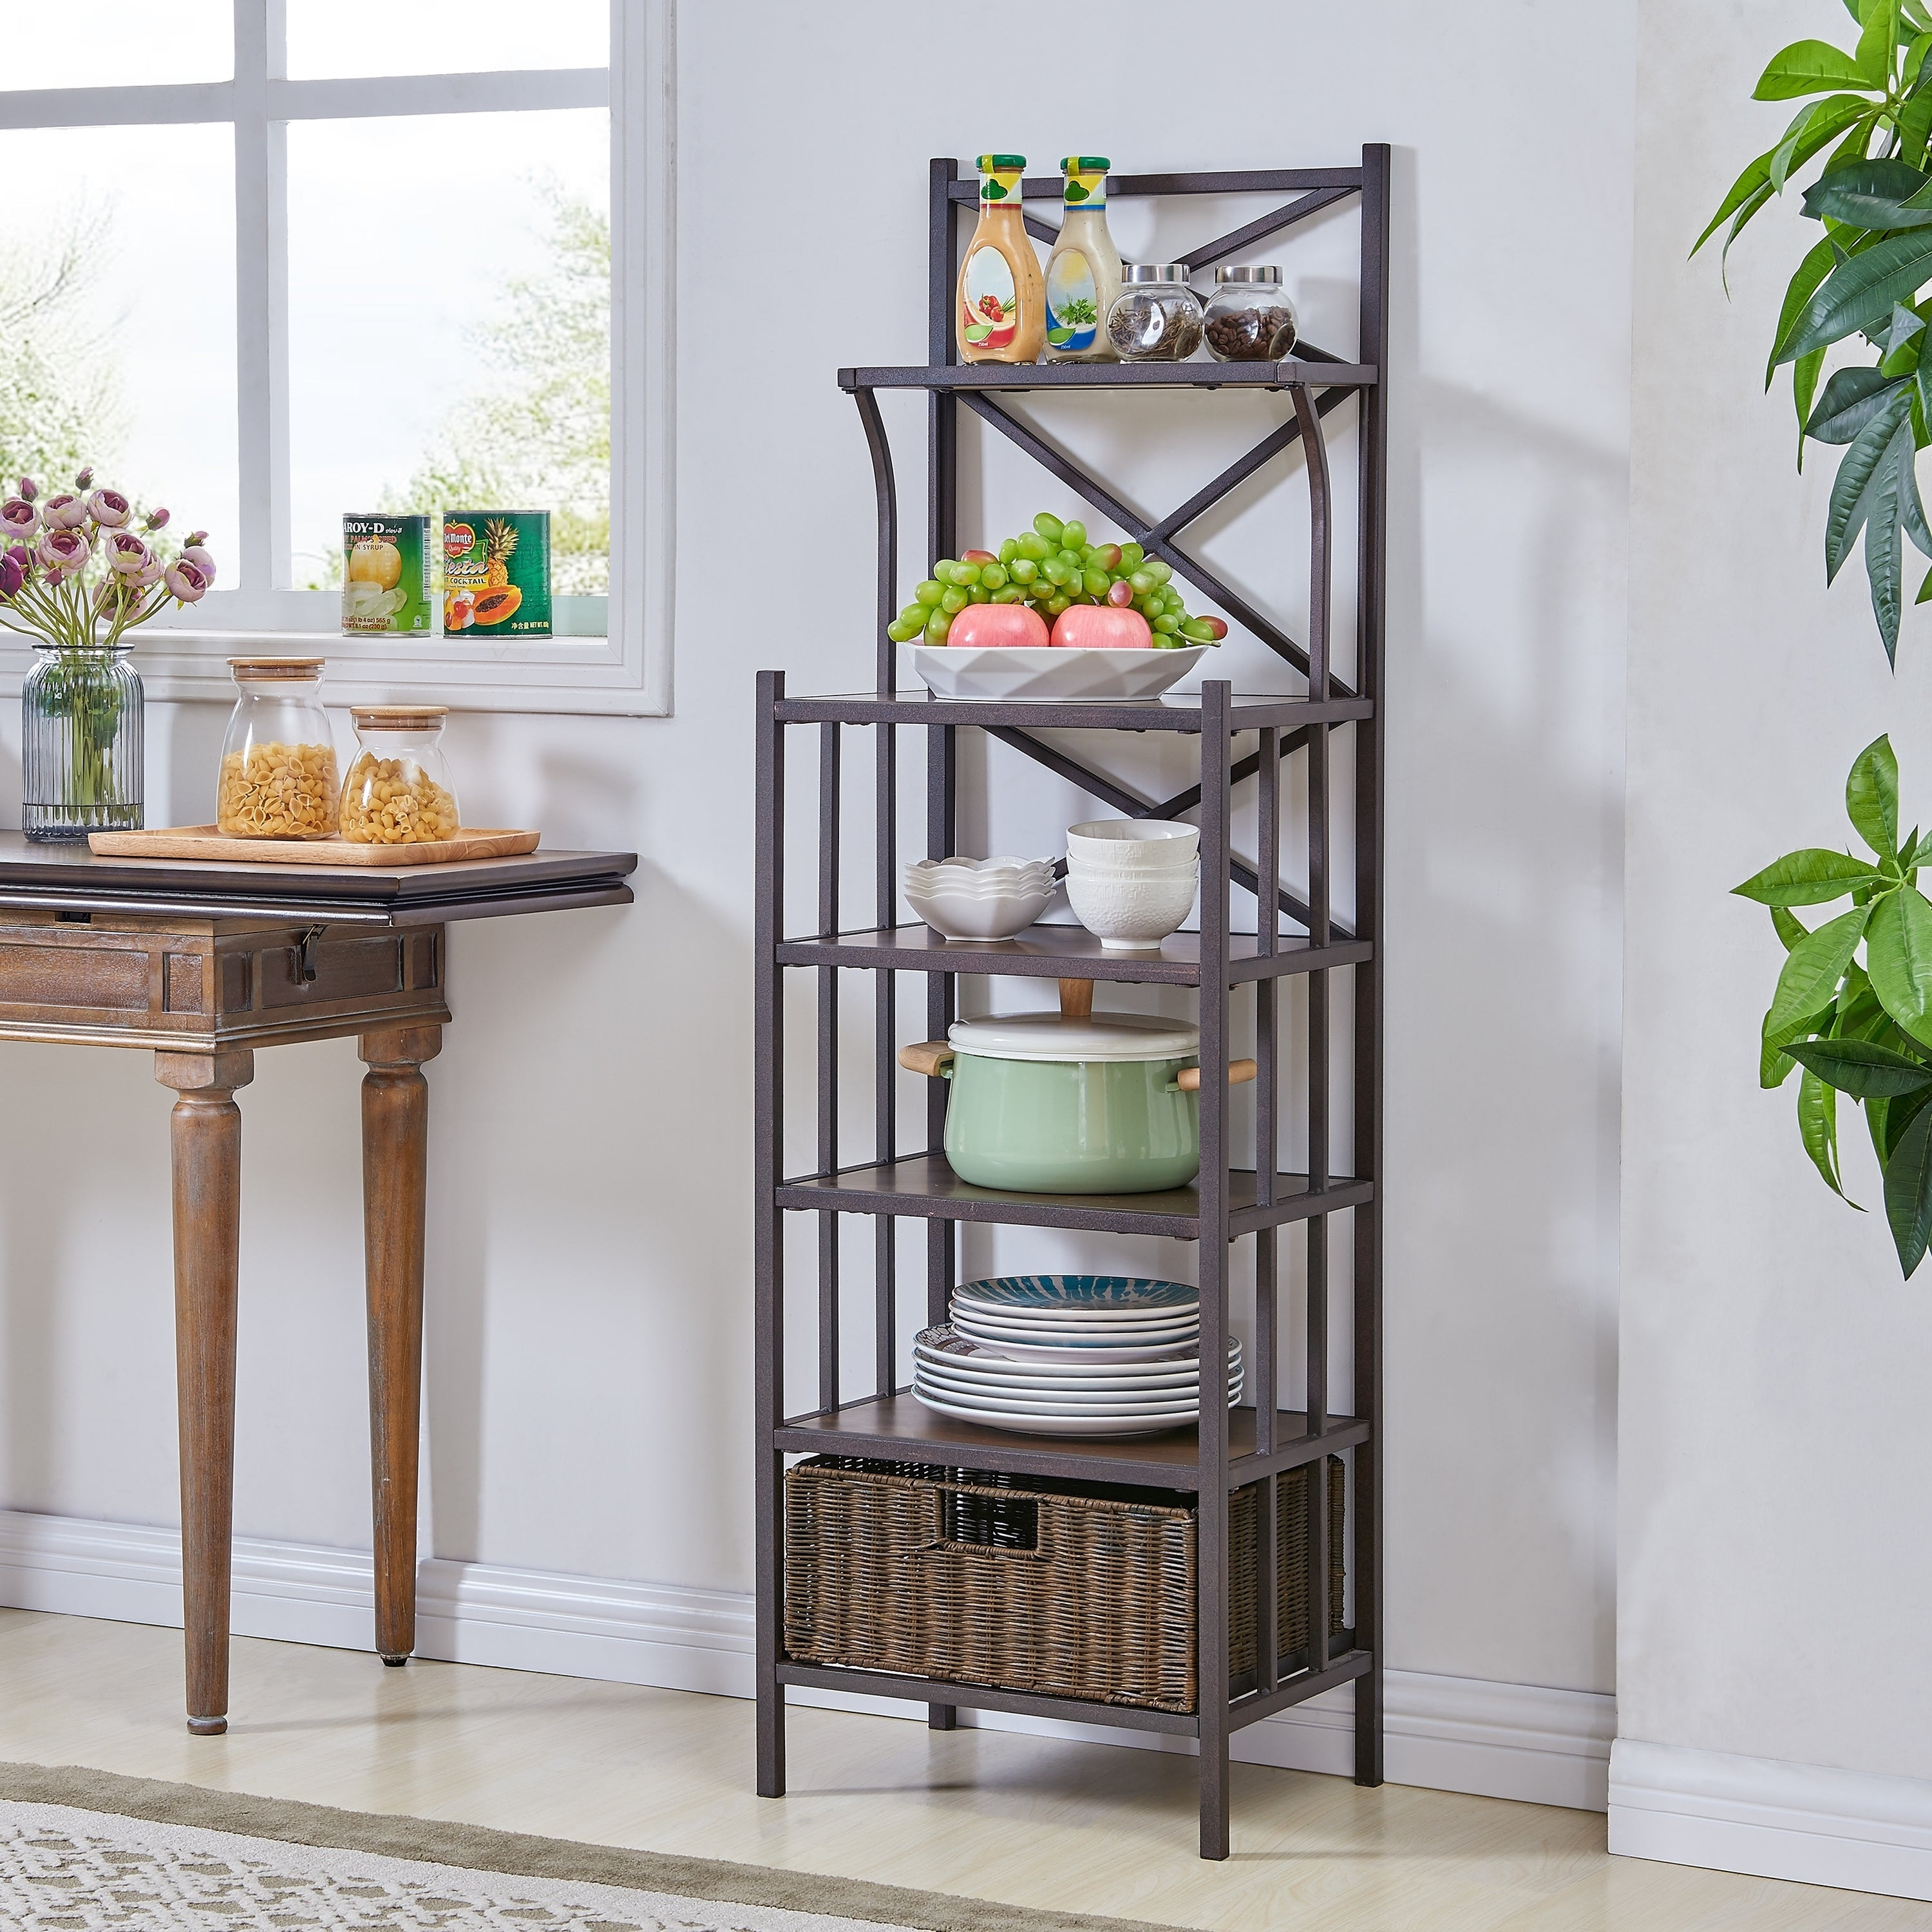 nichol home racks aspire metal rack pin accents products bakers